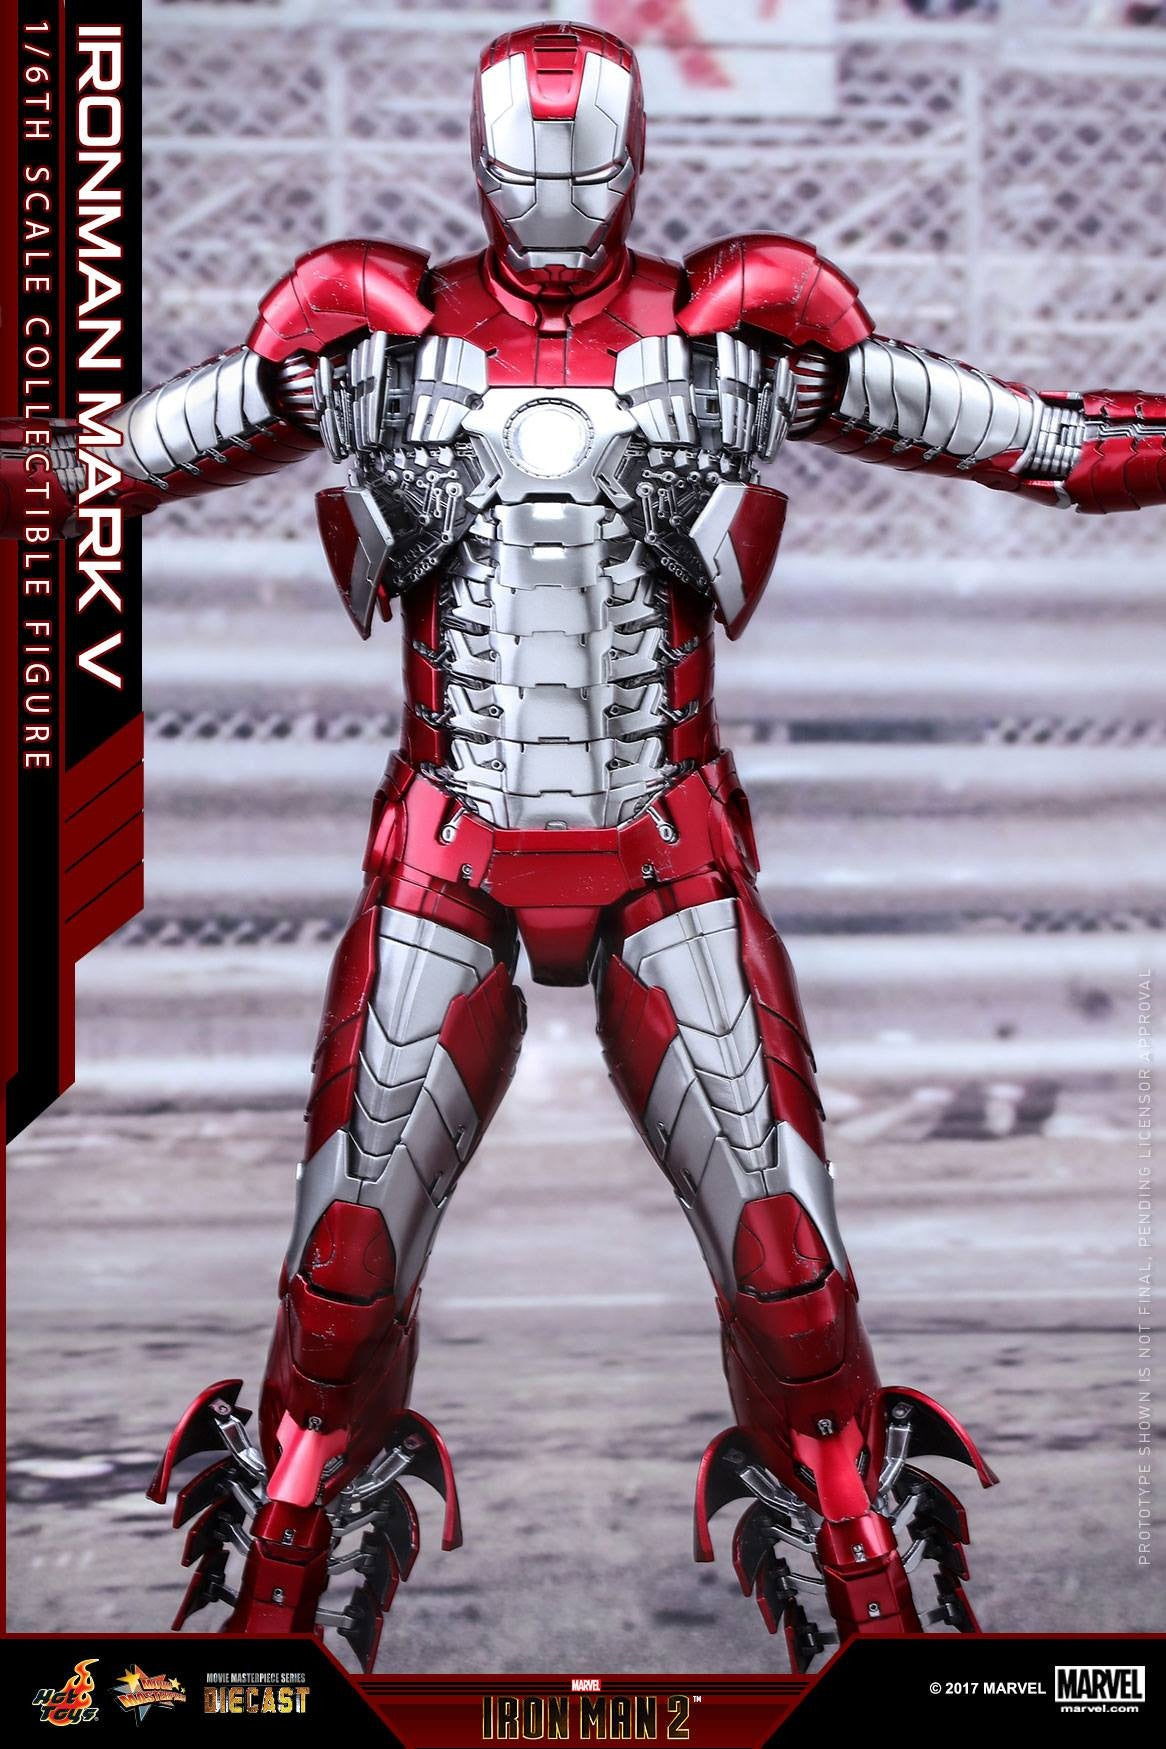 Hot Toys - MMS400D18 - Iron Man 2 - Mark V (DIECAST) - Marvelous Toys - 7